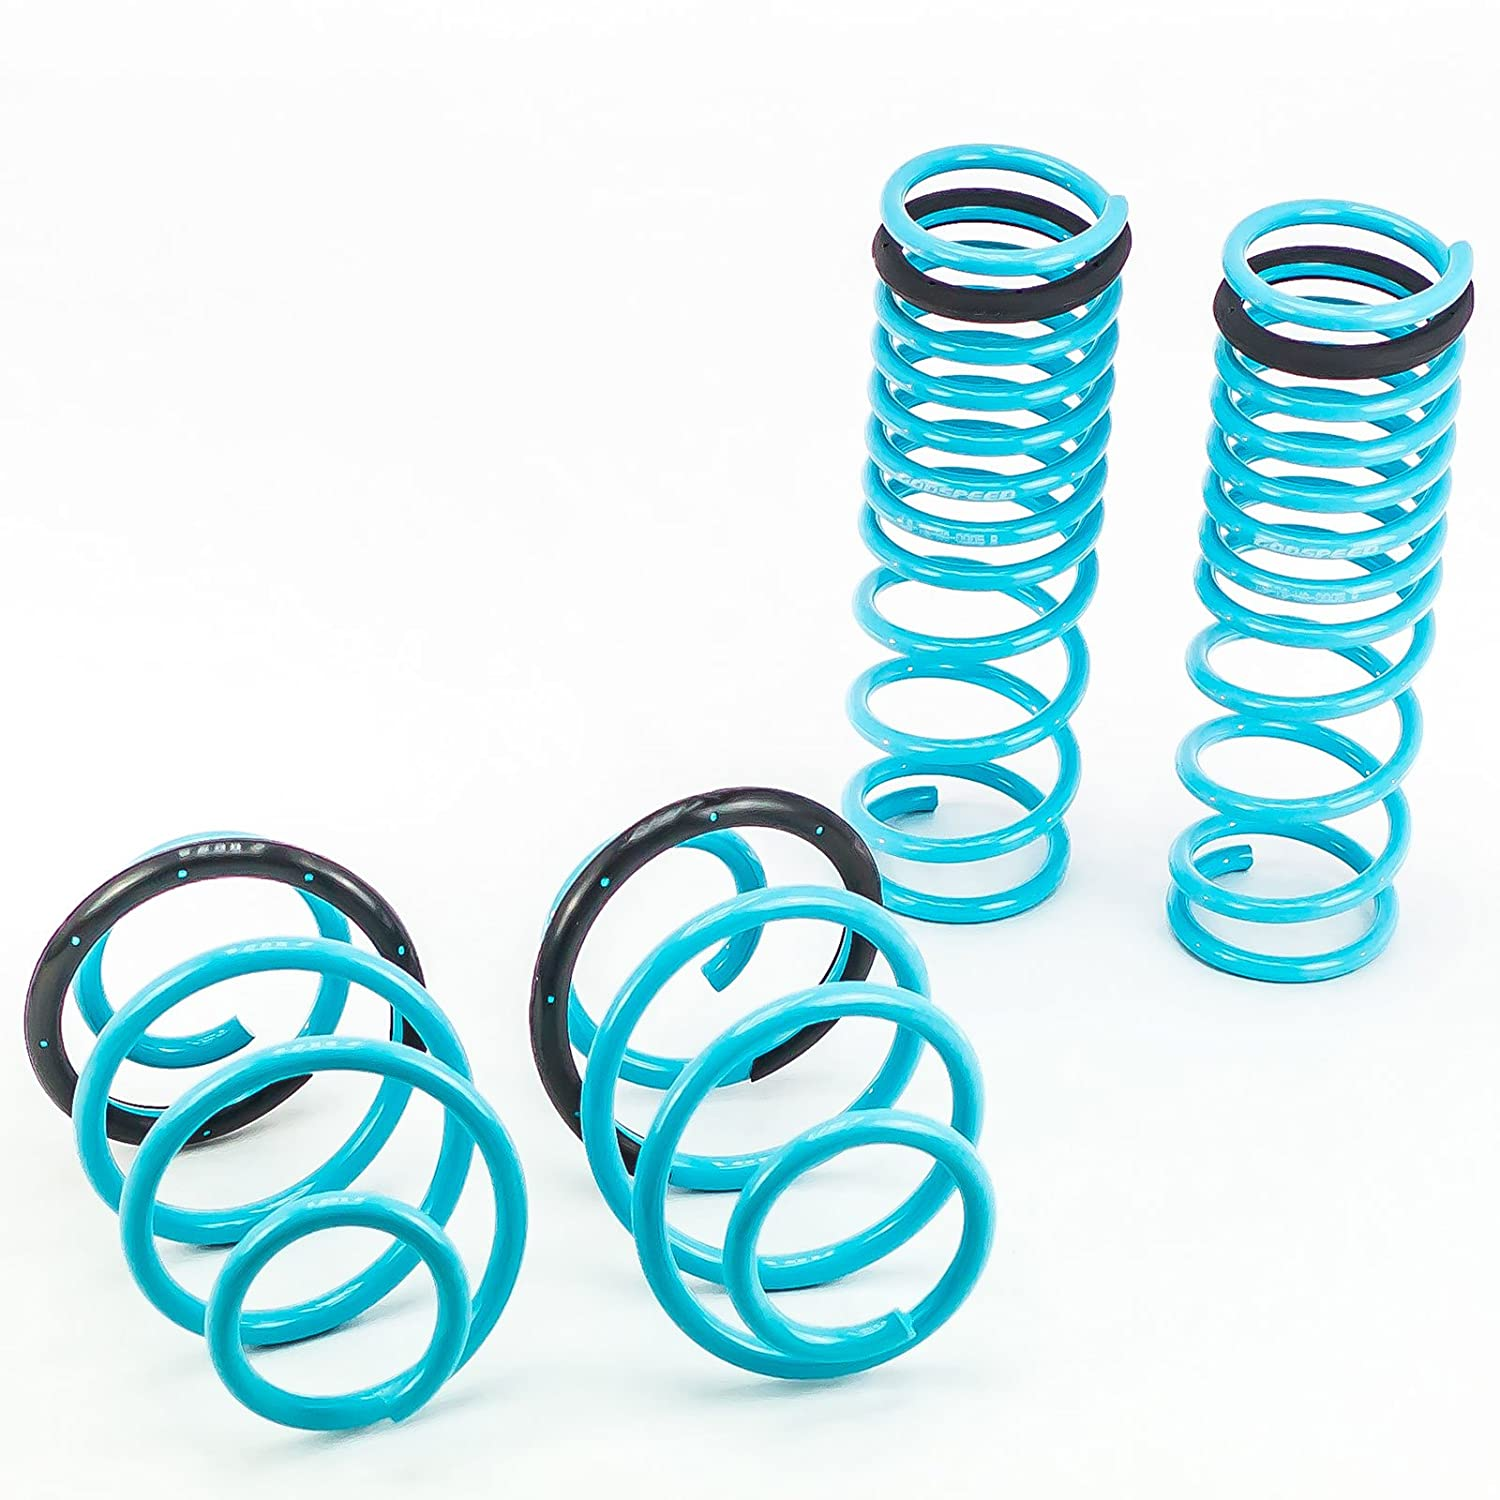 Godspeed(LS-TS-HA-0005) Traction-S Performance Lowering Springs, Reduce Body Roll, Improve Steering Response, Set of 4